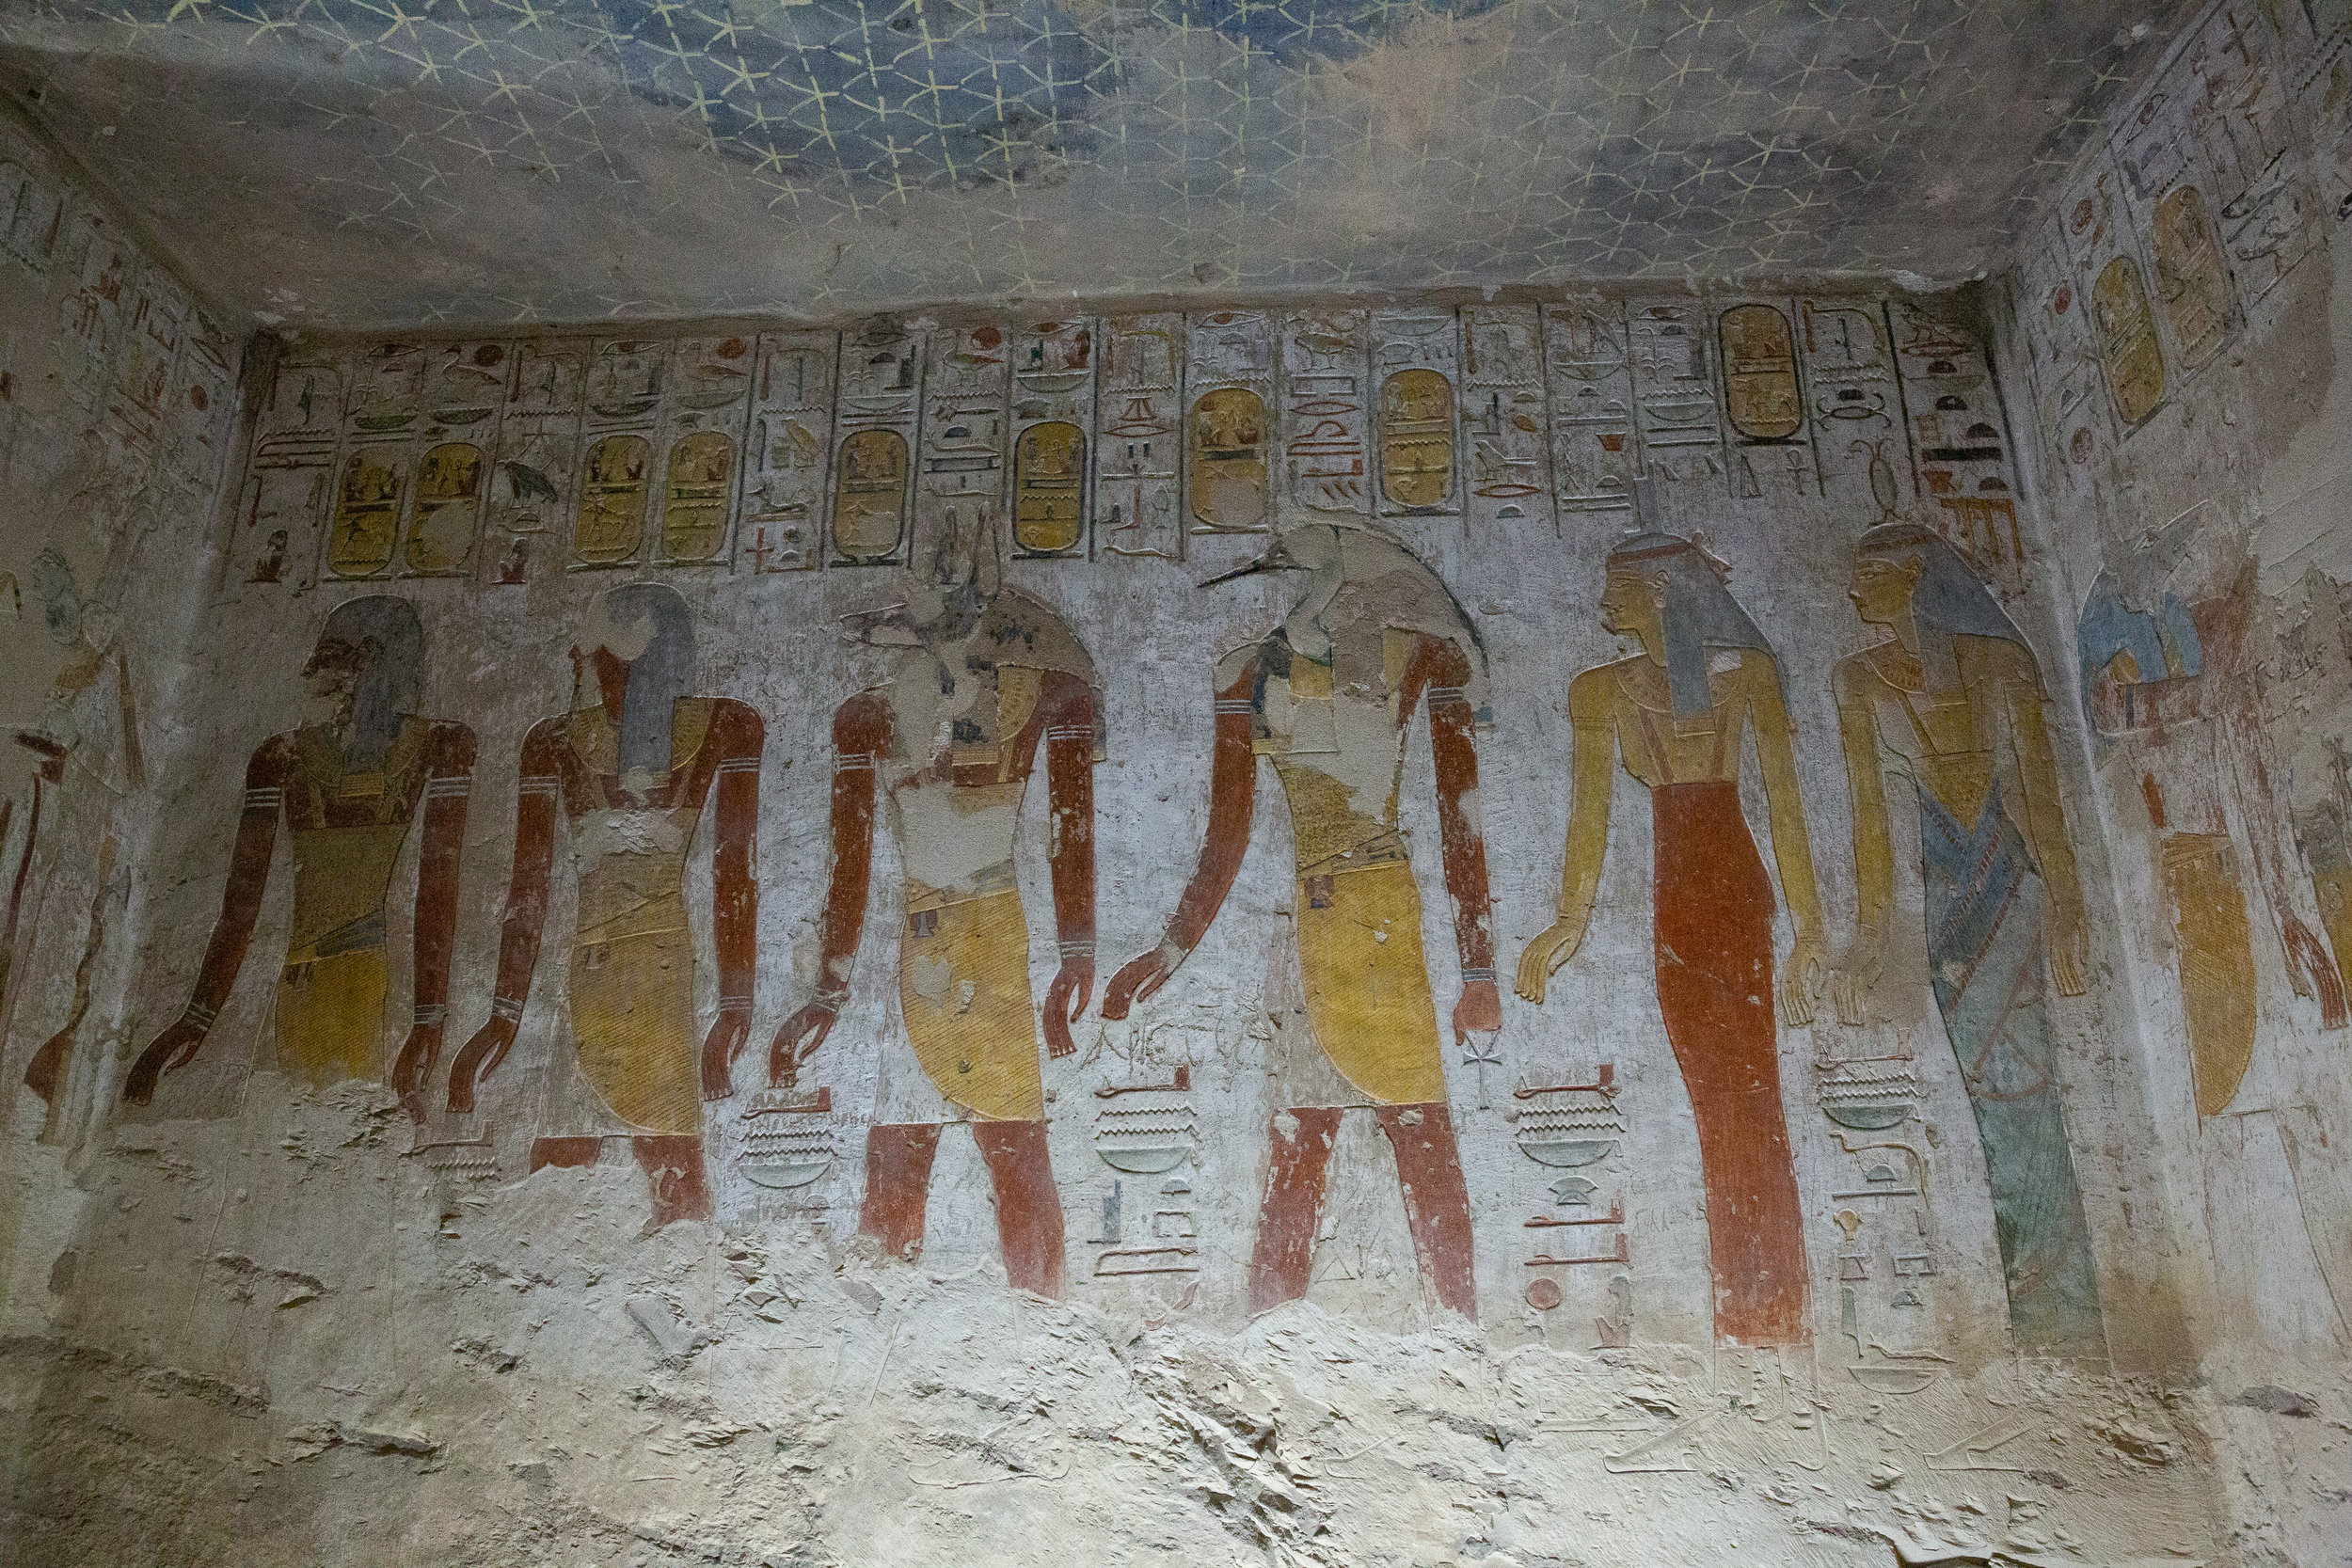 Valley of the Kings, Luxor - Egypt - Wild Earth Expeditions